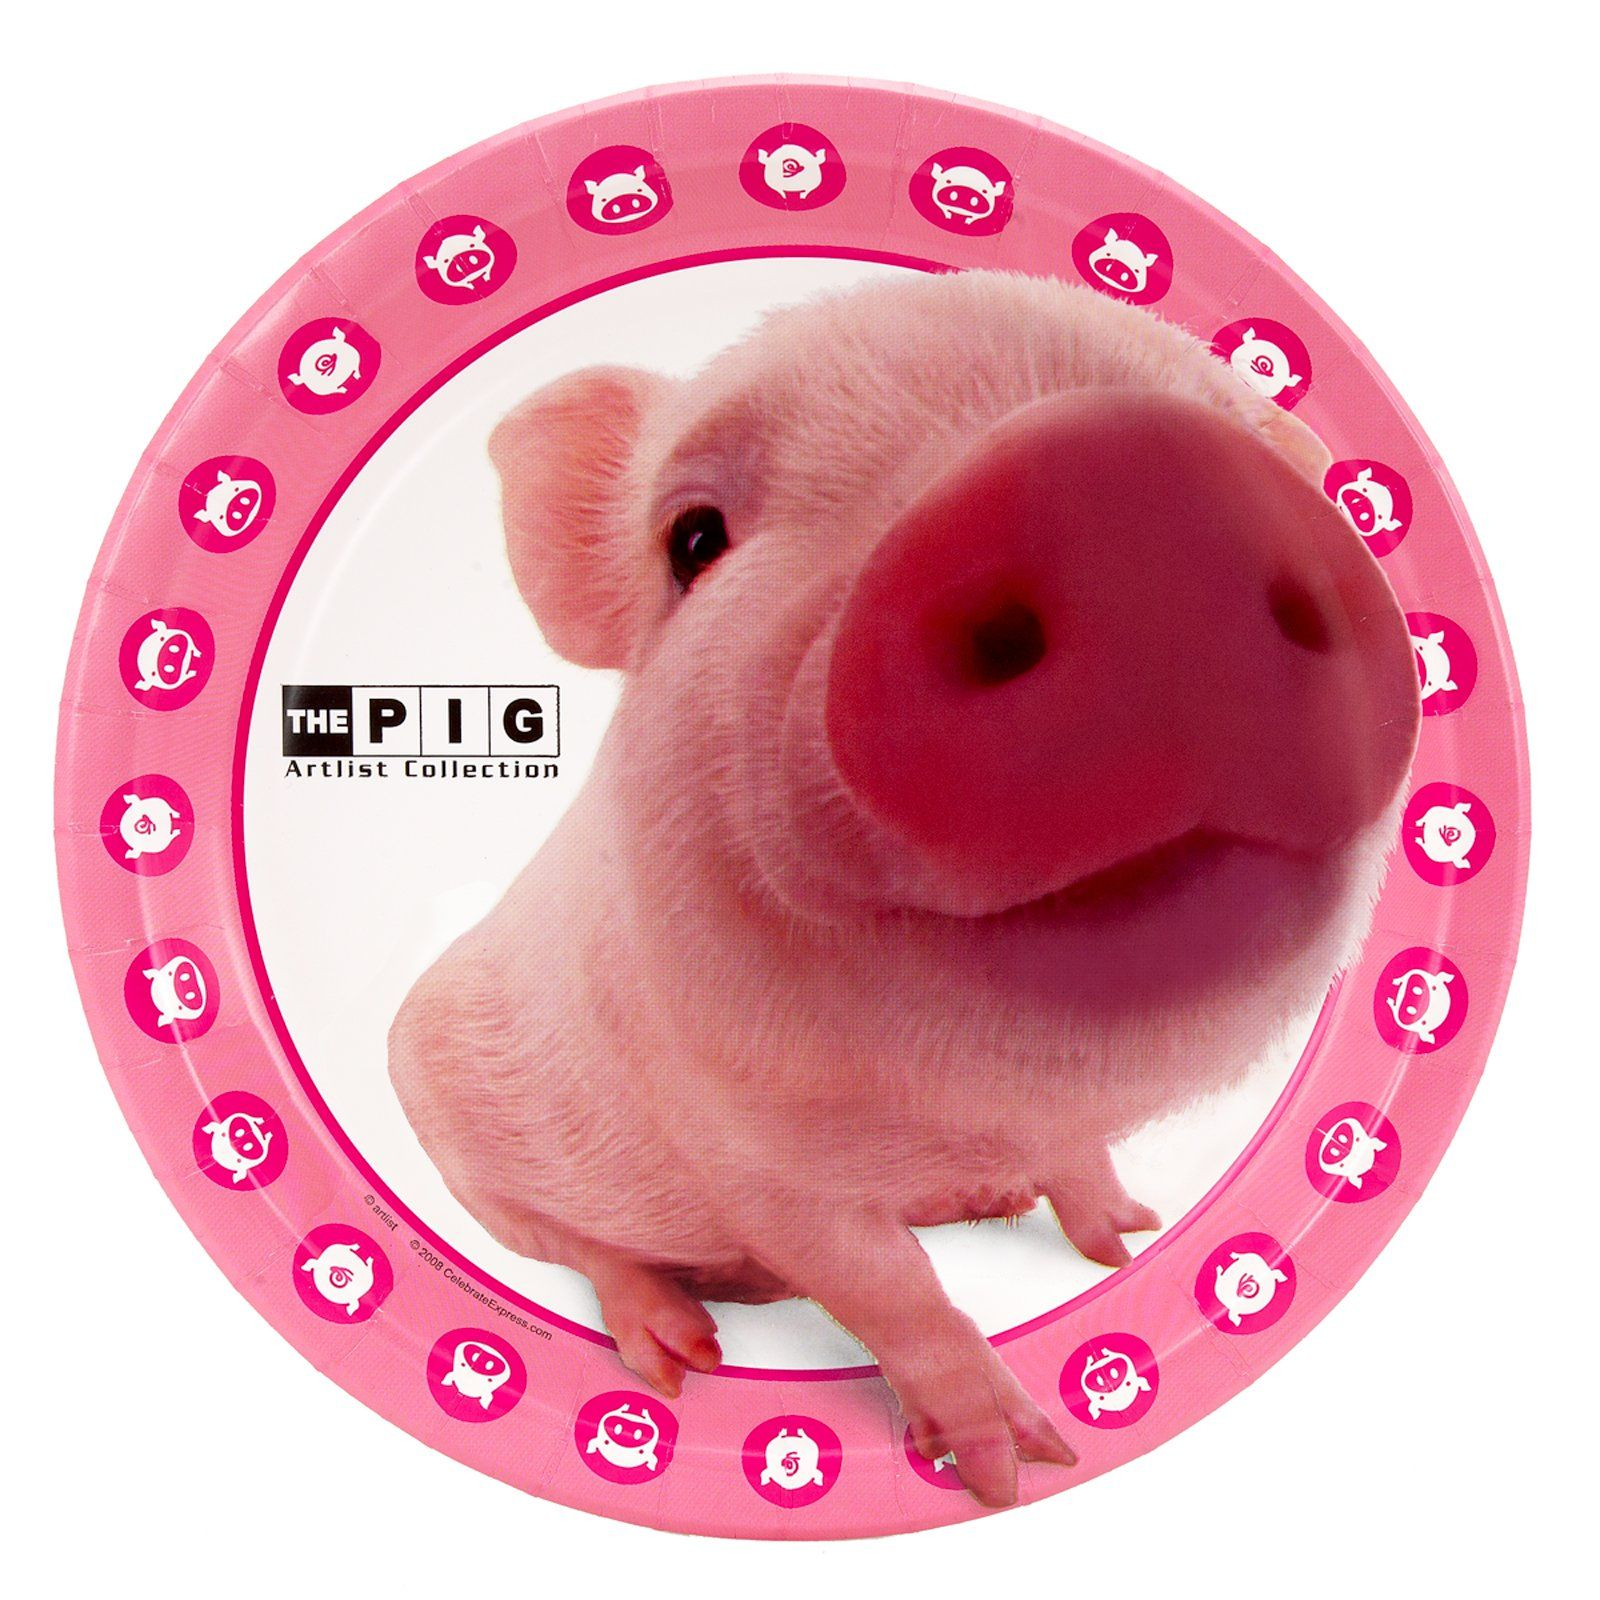 THE PIG Dinner Plates ~Don\u0027t know why but I think these are cute  sc 1 st  Pinterest & THE PIG Dinner Plates ~Don\u0027t know why but I think these are cute ...